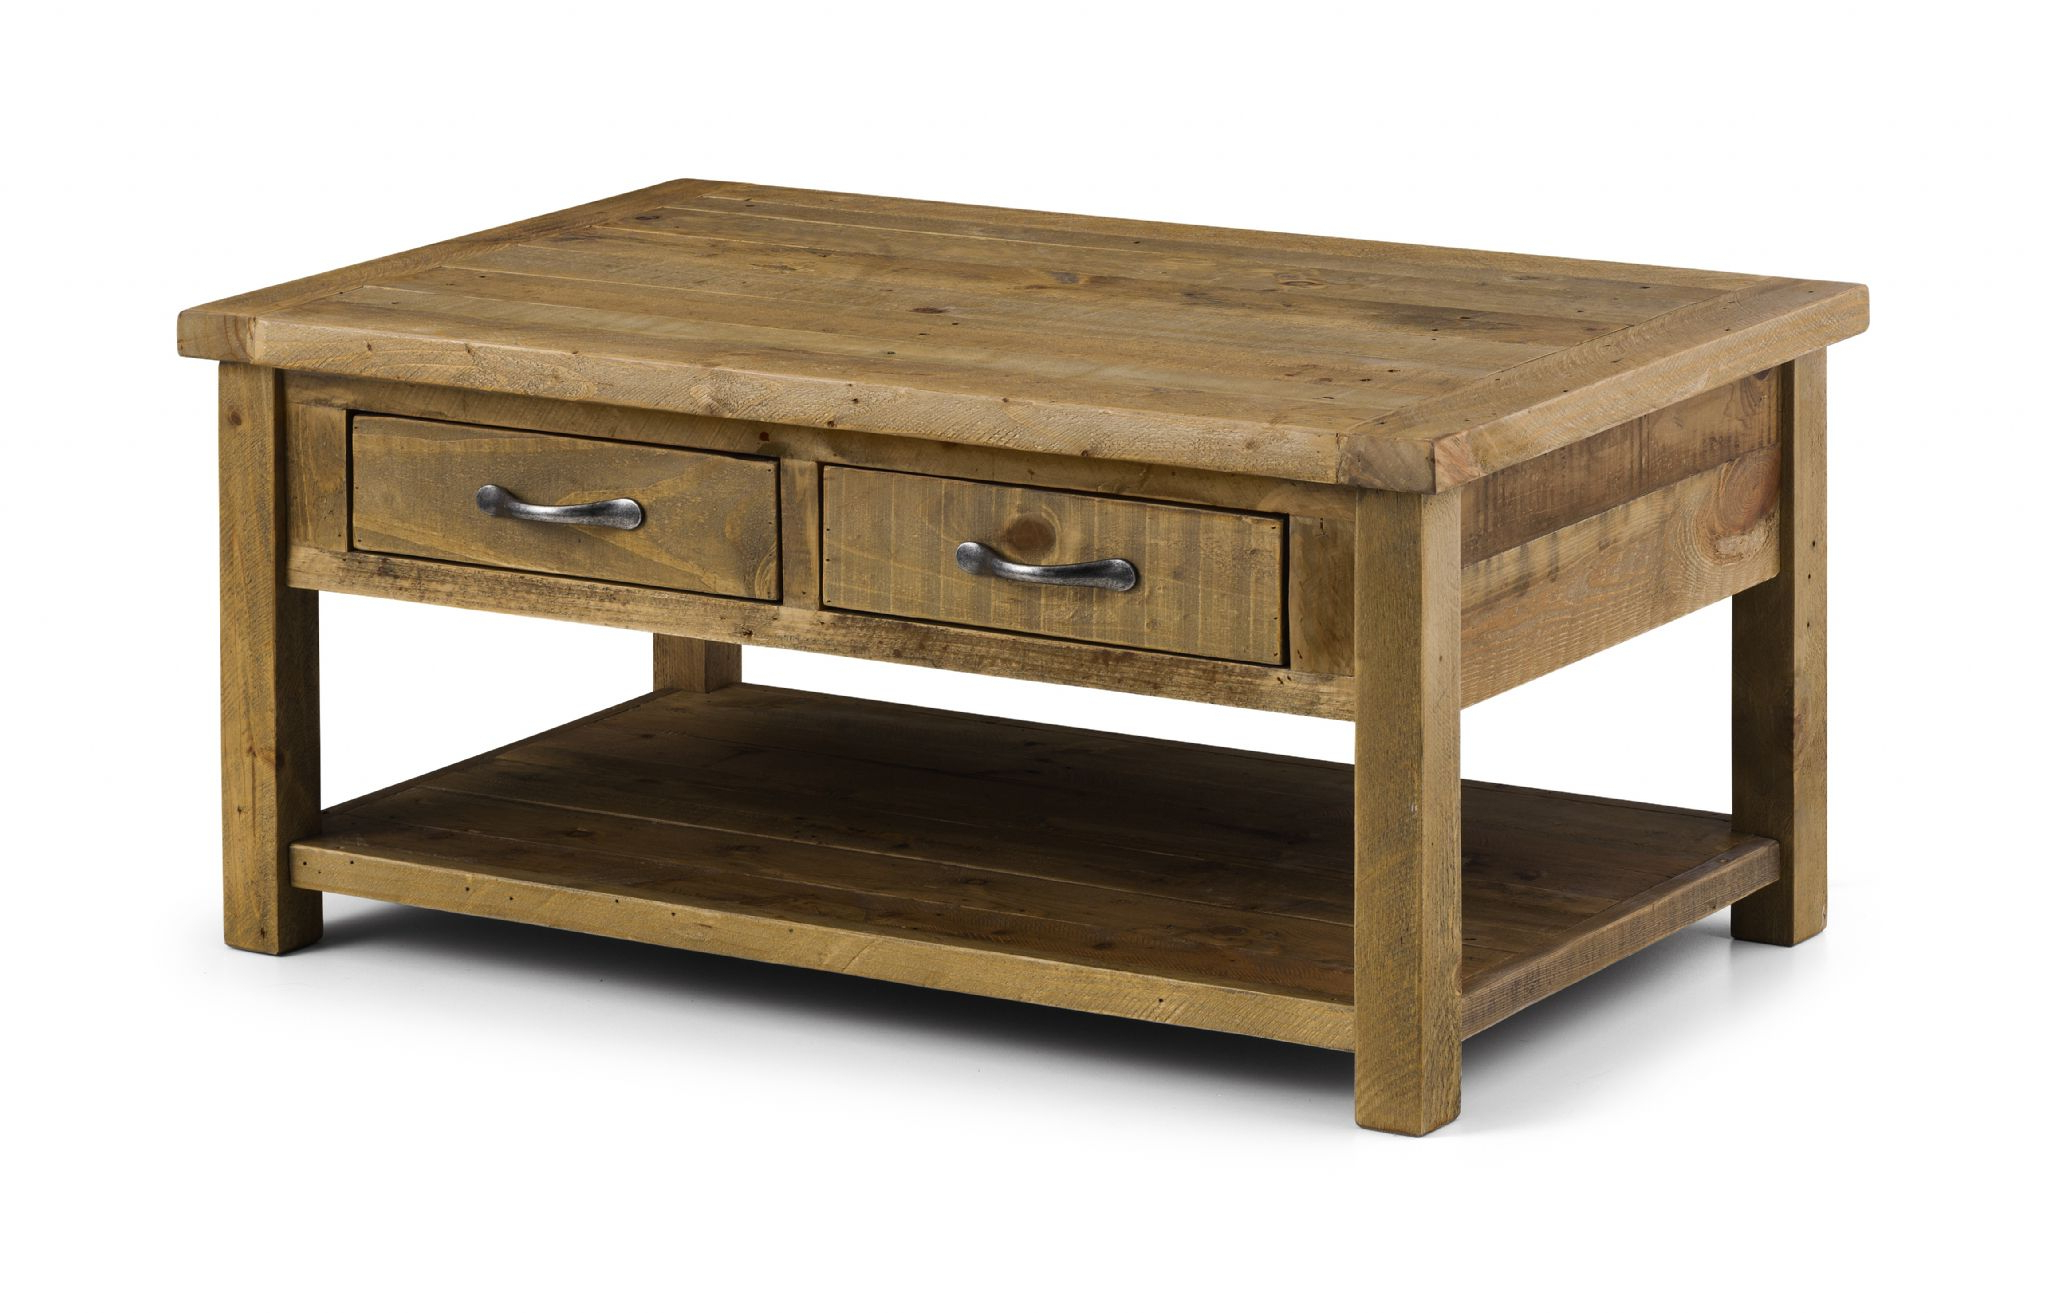 Cordoba Solid Reclaimed Pine Coffee Table With 2 Drawers Jb36 Throughout Famous Reclaimed Pine Coffee Tables (View 11 of 20)